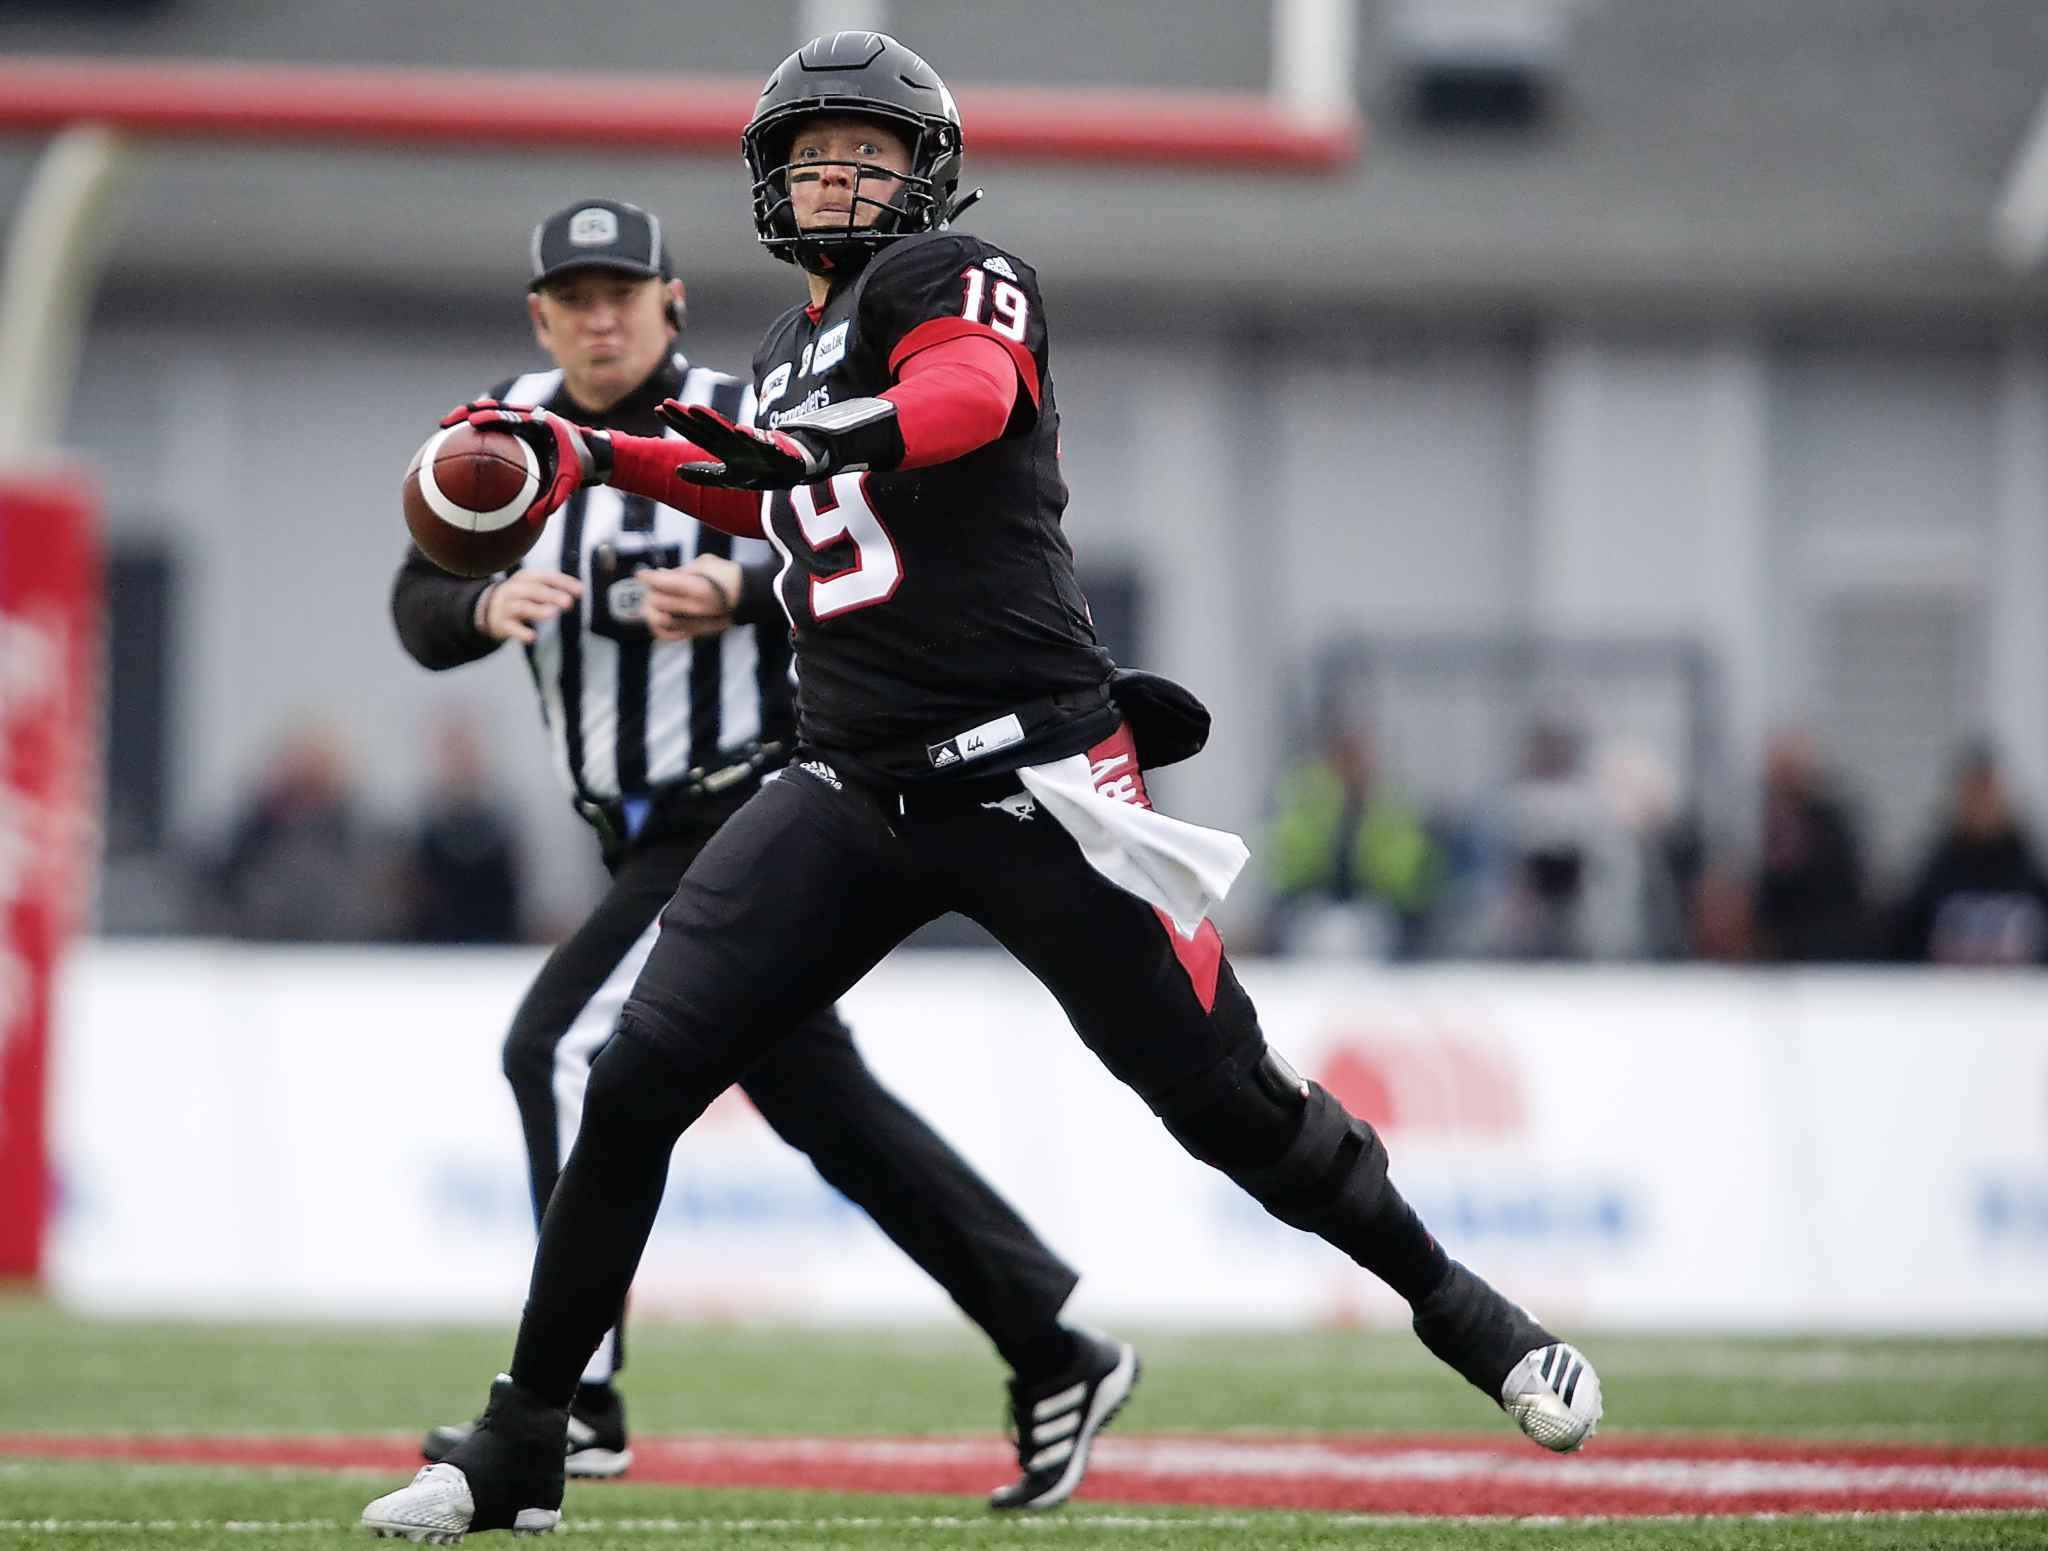 JEFF MCINTOSH / THE CANADIAN PRESS</p><p>Calgary Stampeders quarterback Bo Levi Mitchell prepares to throw the ball during first-half CFL West Division final football game action against the Winnipeg Blue Bombers in Calgary, Alberta, Sunday, Nov. 18, 2018.</p>